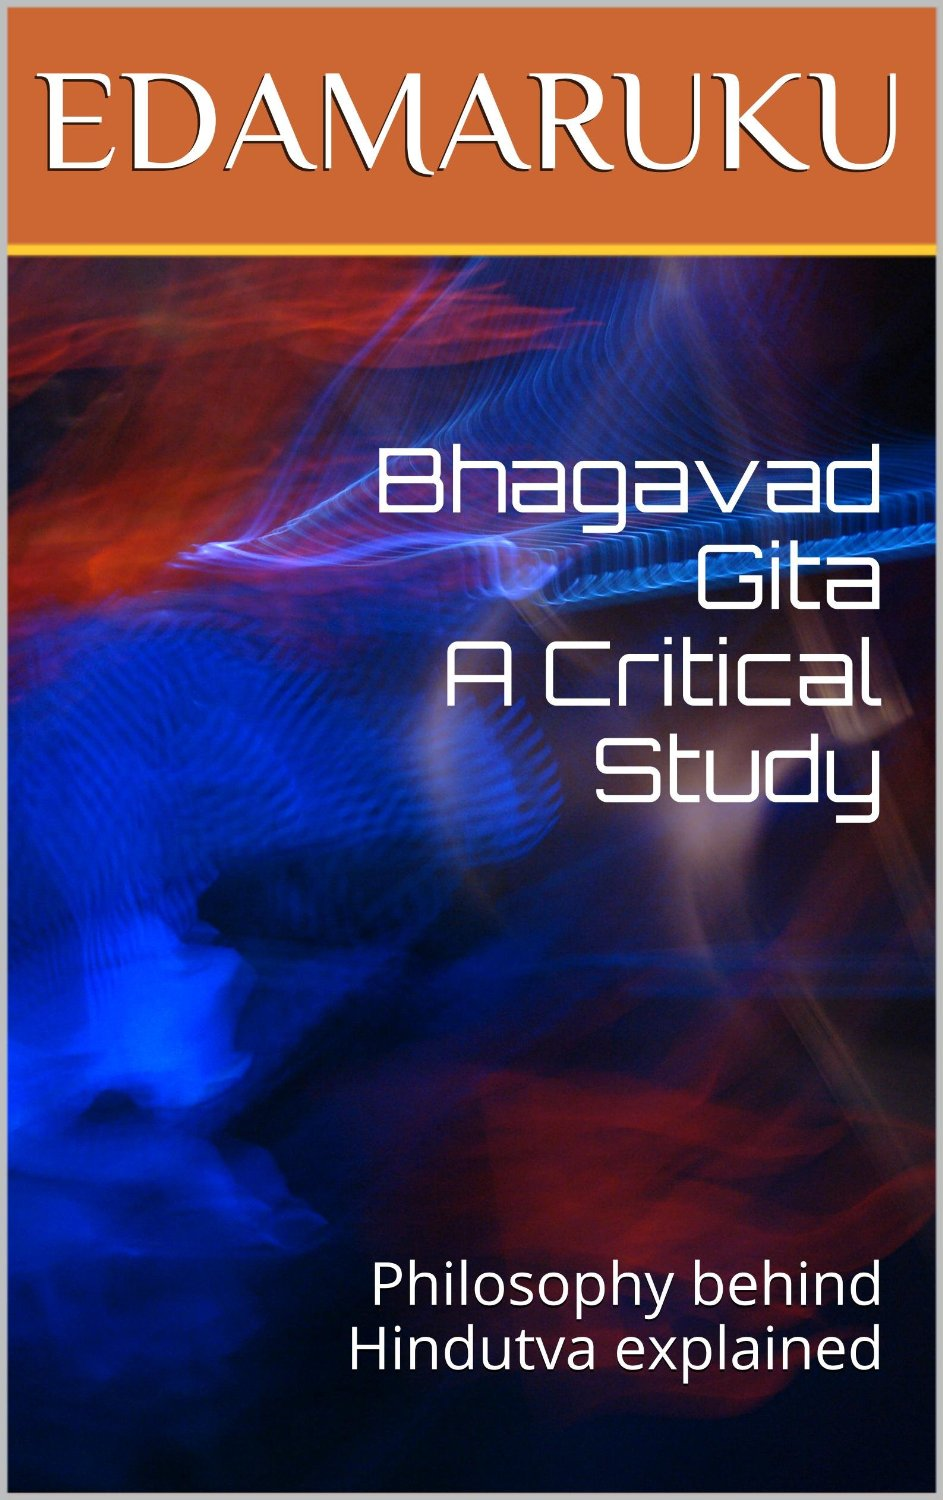 "an analysis of the philosophy portrayed in the bhagavad gita Full-text paper (pdf): the knowledge of ""self"" from the bhagavad-gita and its   ancient philosophy like the bhagavad-gita needs intelligent re-interpretation to   of self knowledge from the bhagavad-gita has been presented in the context ."